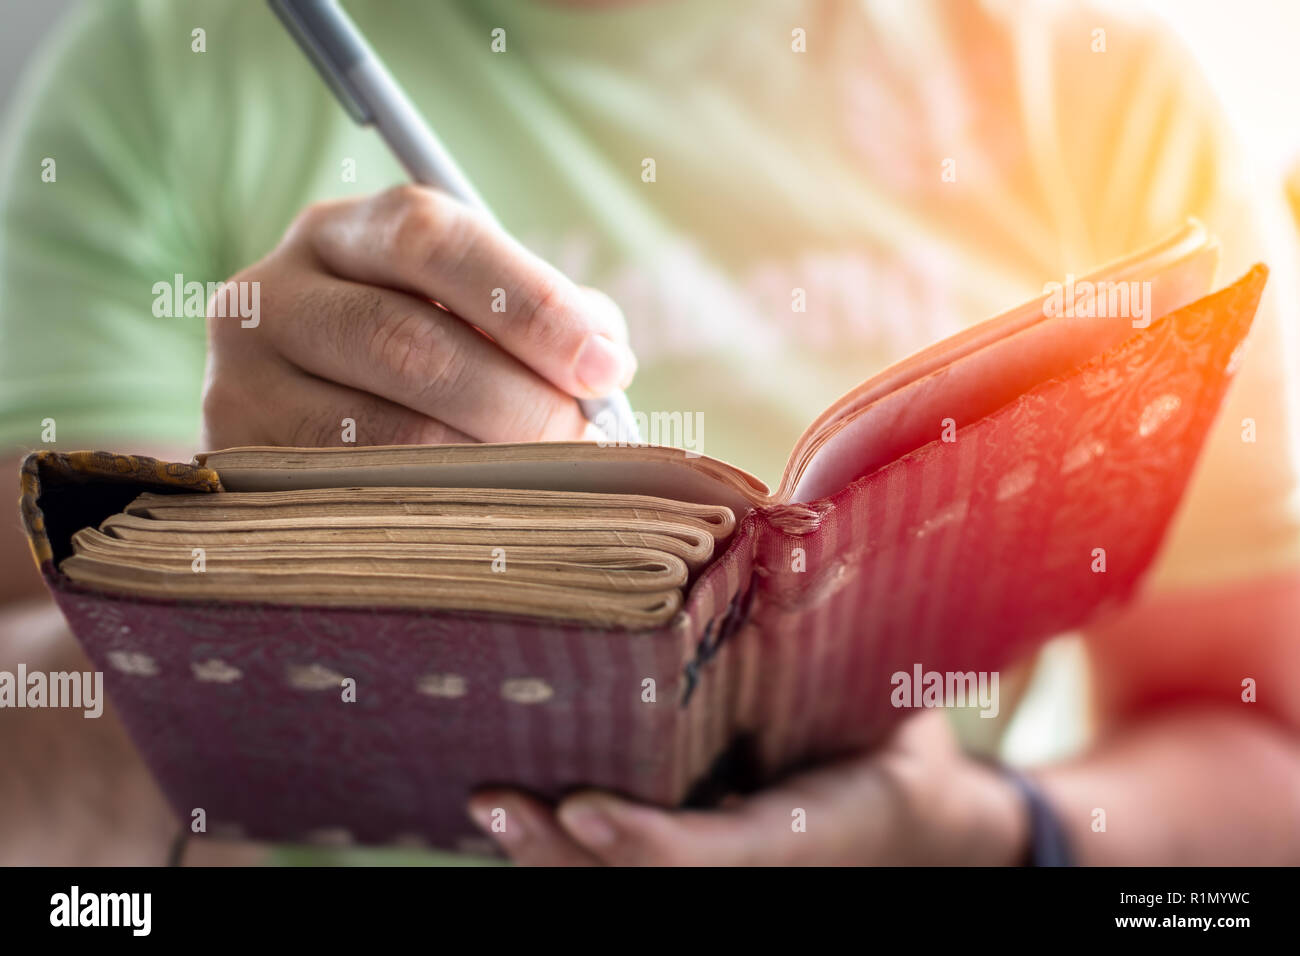 A young successful person taking notes in a personal journal - Stock Image